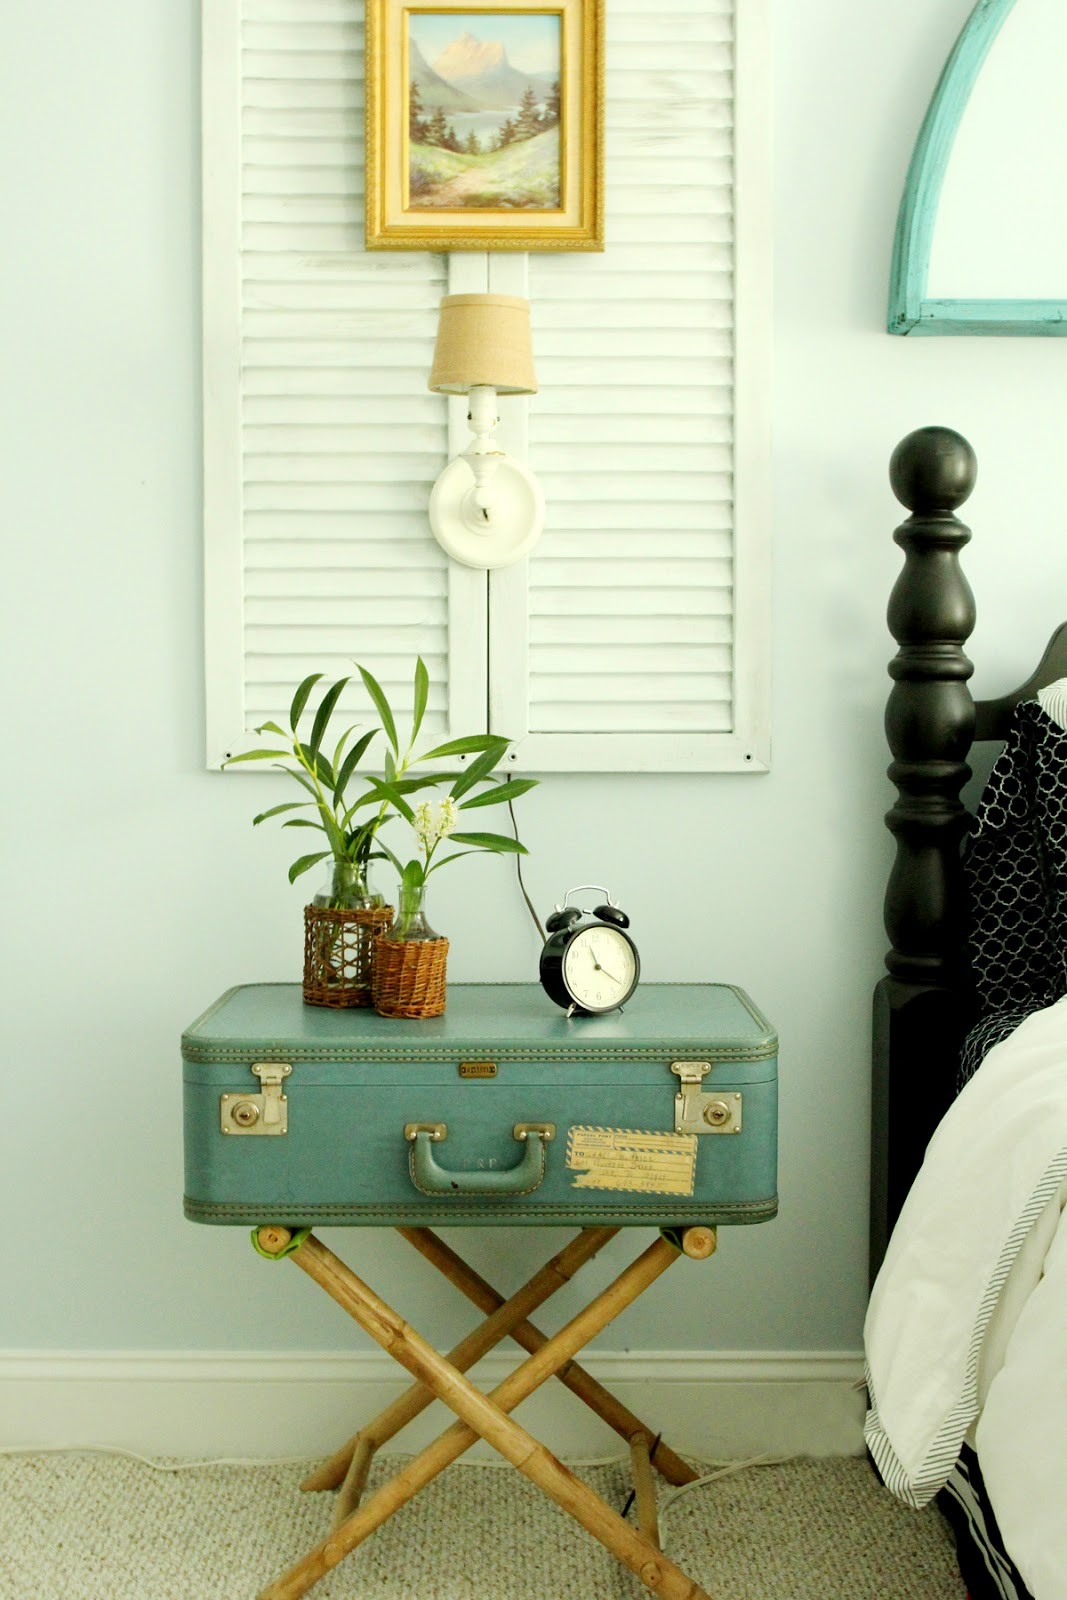 Revamp Your Vintage Industrial Decor With Family Tips! 2